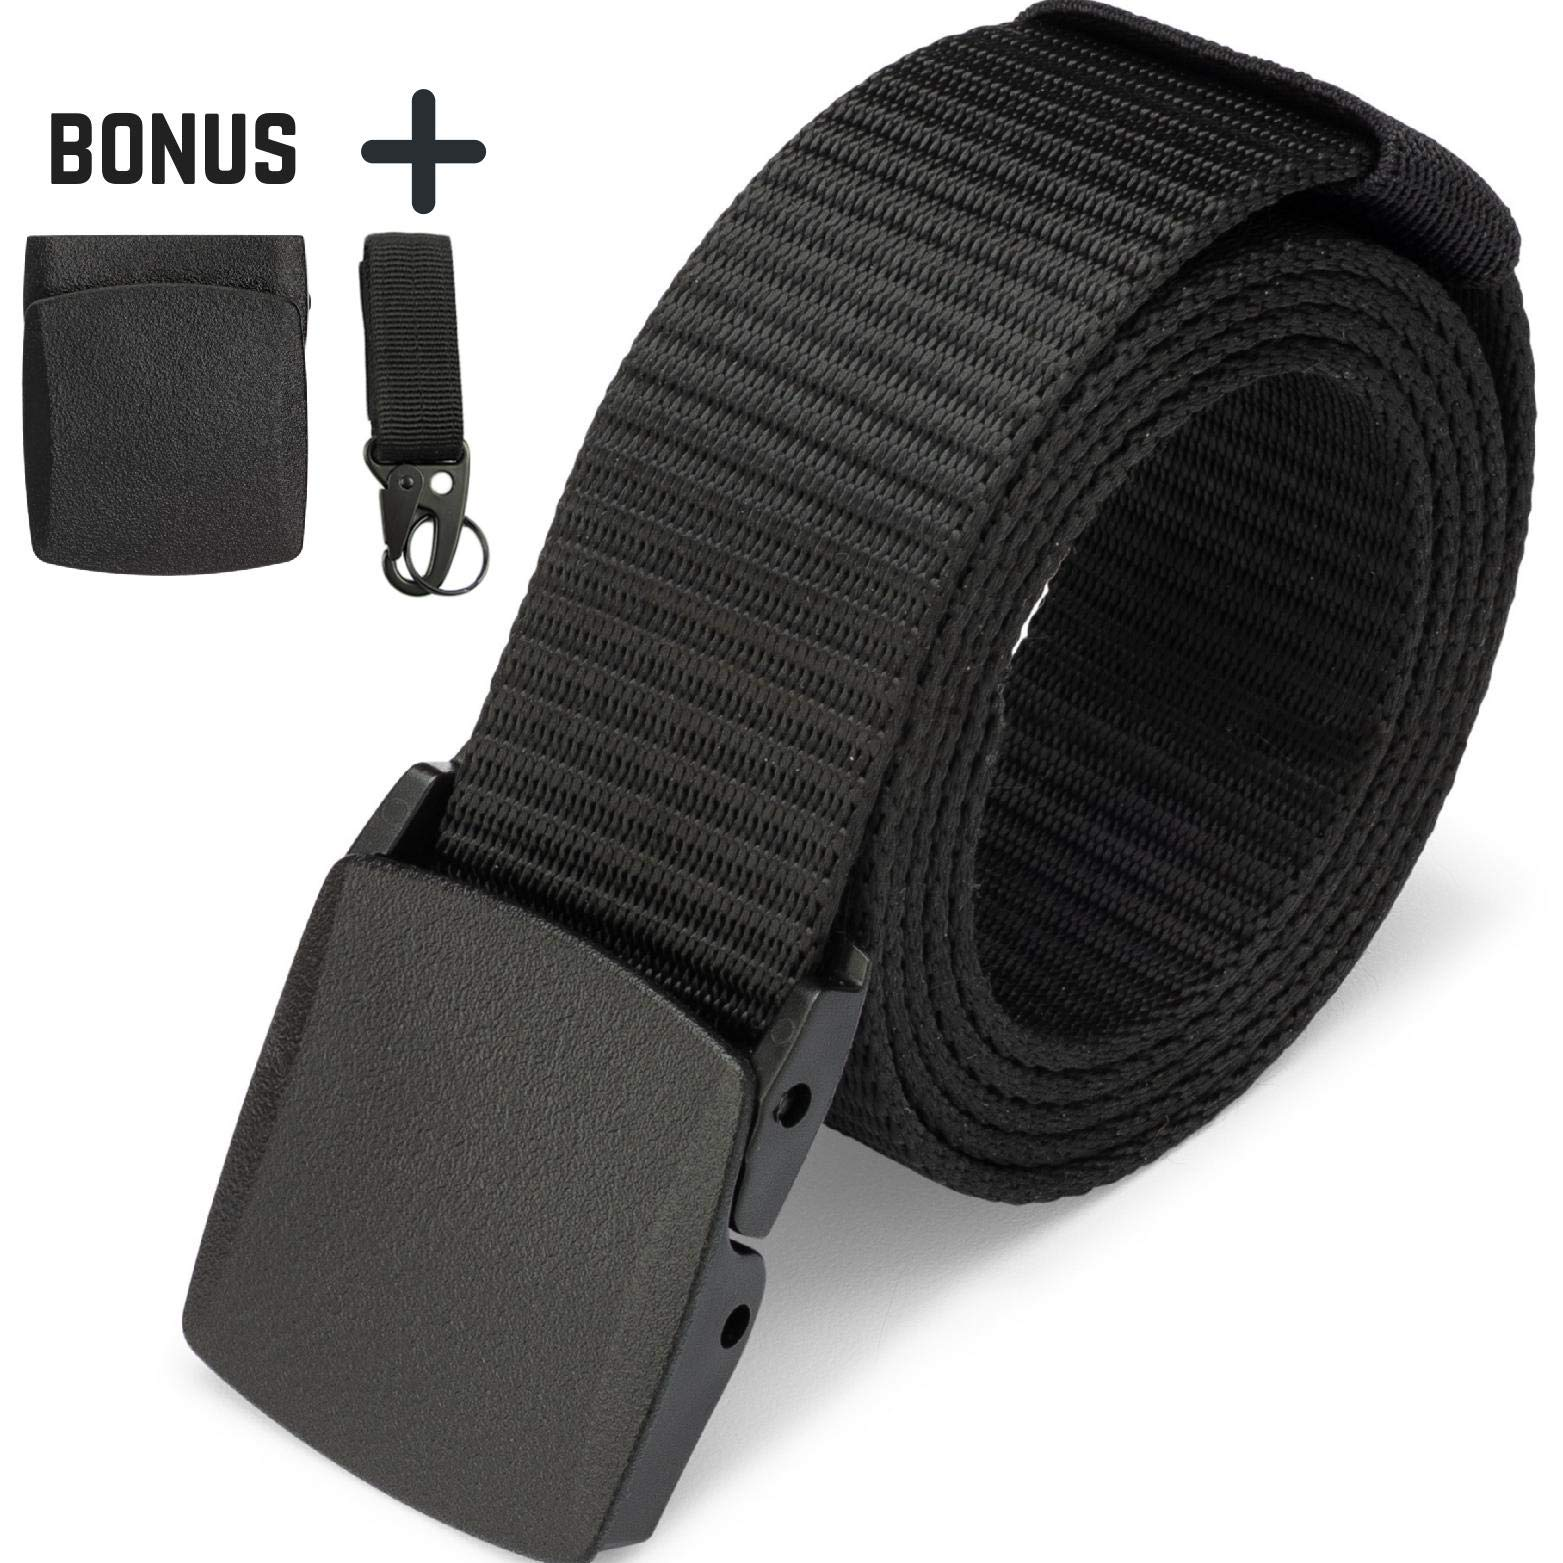 Dragon Ninja Tactical Belt Nylon Web Canvas Webbing Adjustable Waterproof Military Web style with Two YKK Buckles and Heavy Duty Keychain Key ring